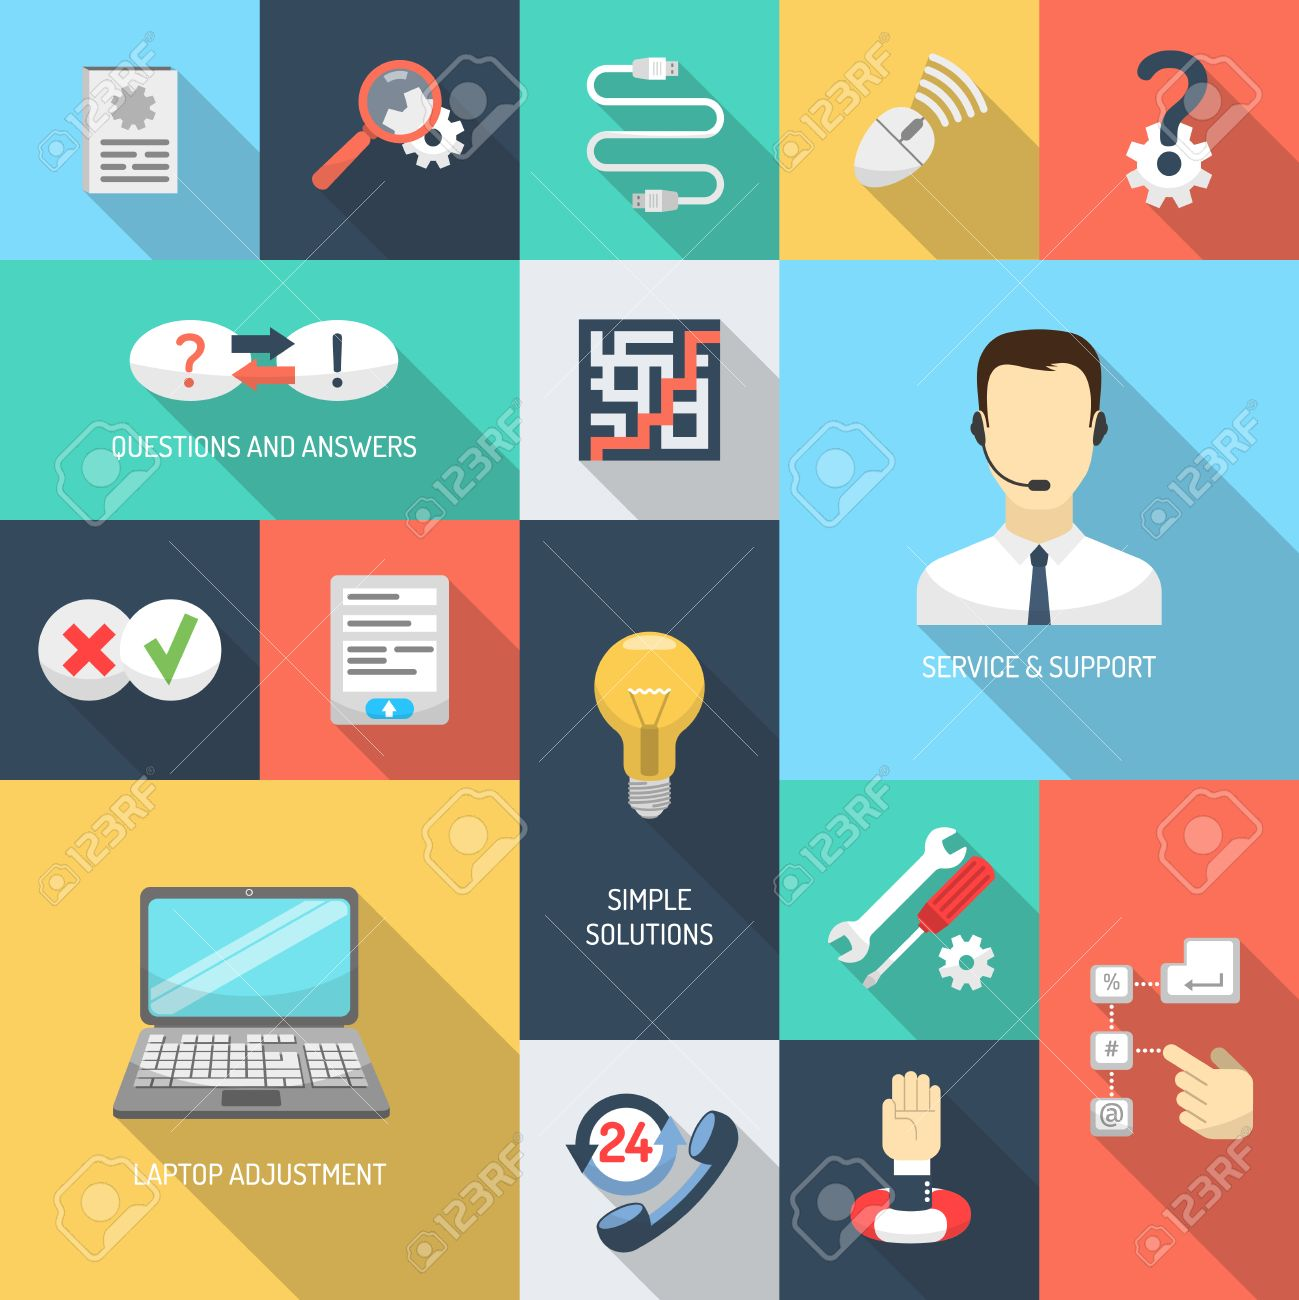 help desk icon images stock pictures royalty help desk help desk icon support service simple questions and answers solutions icons flat set isolated vector